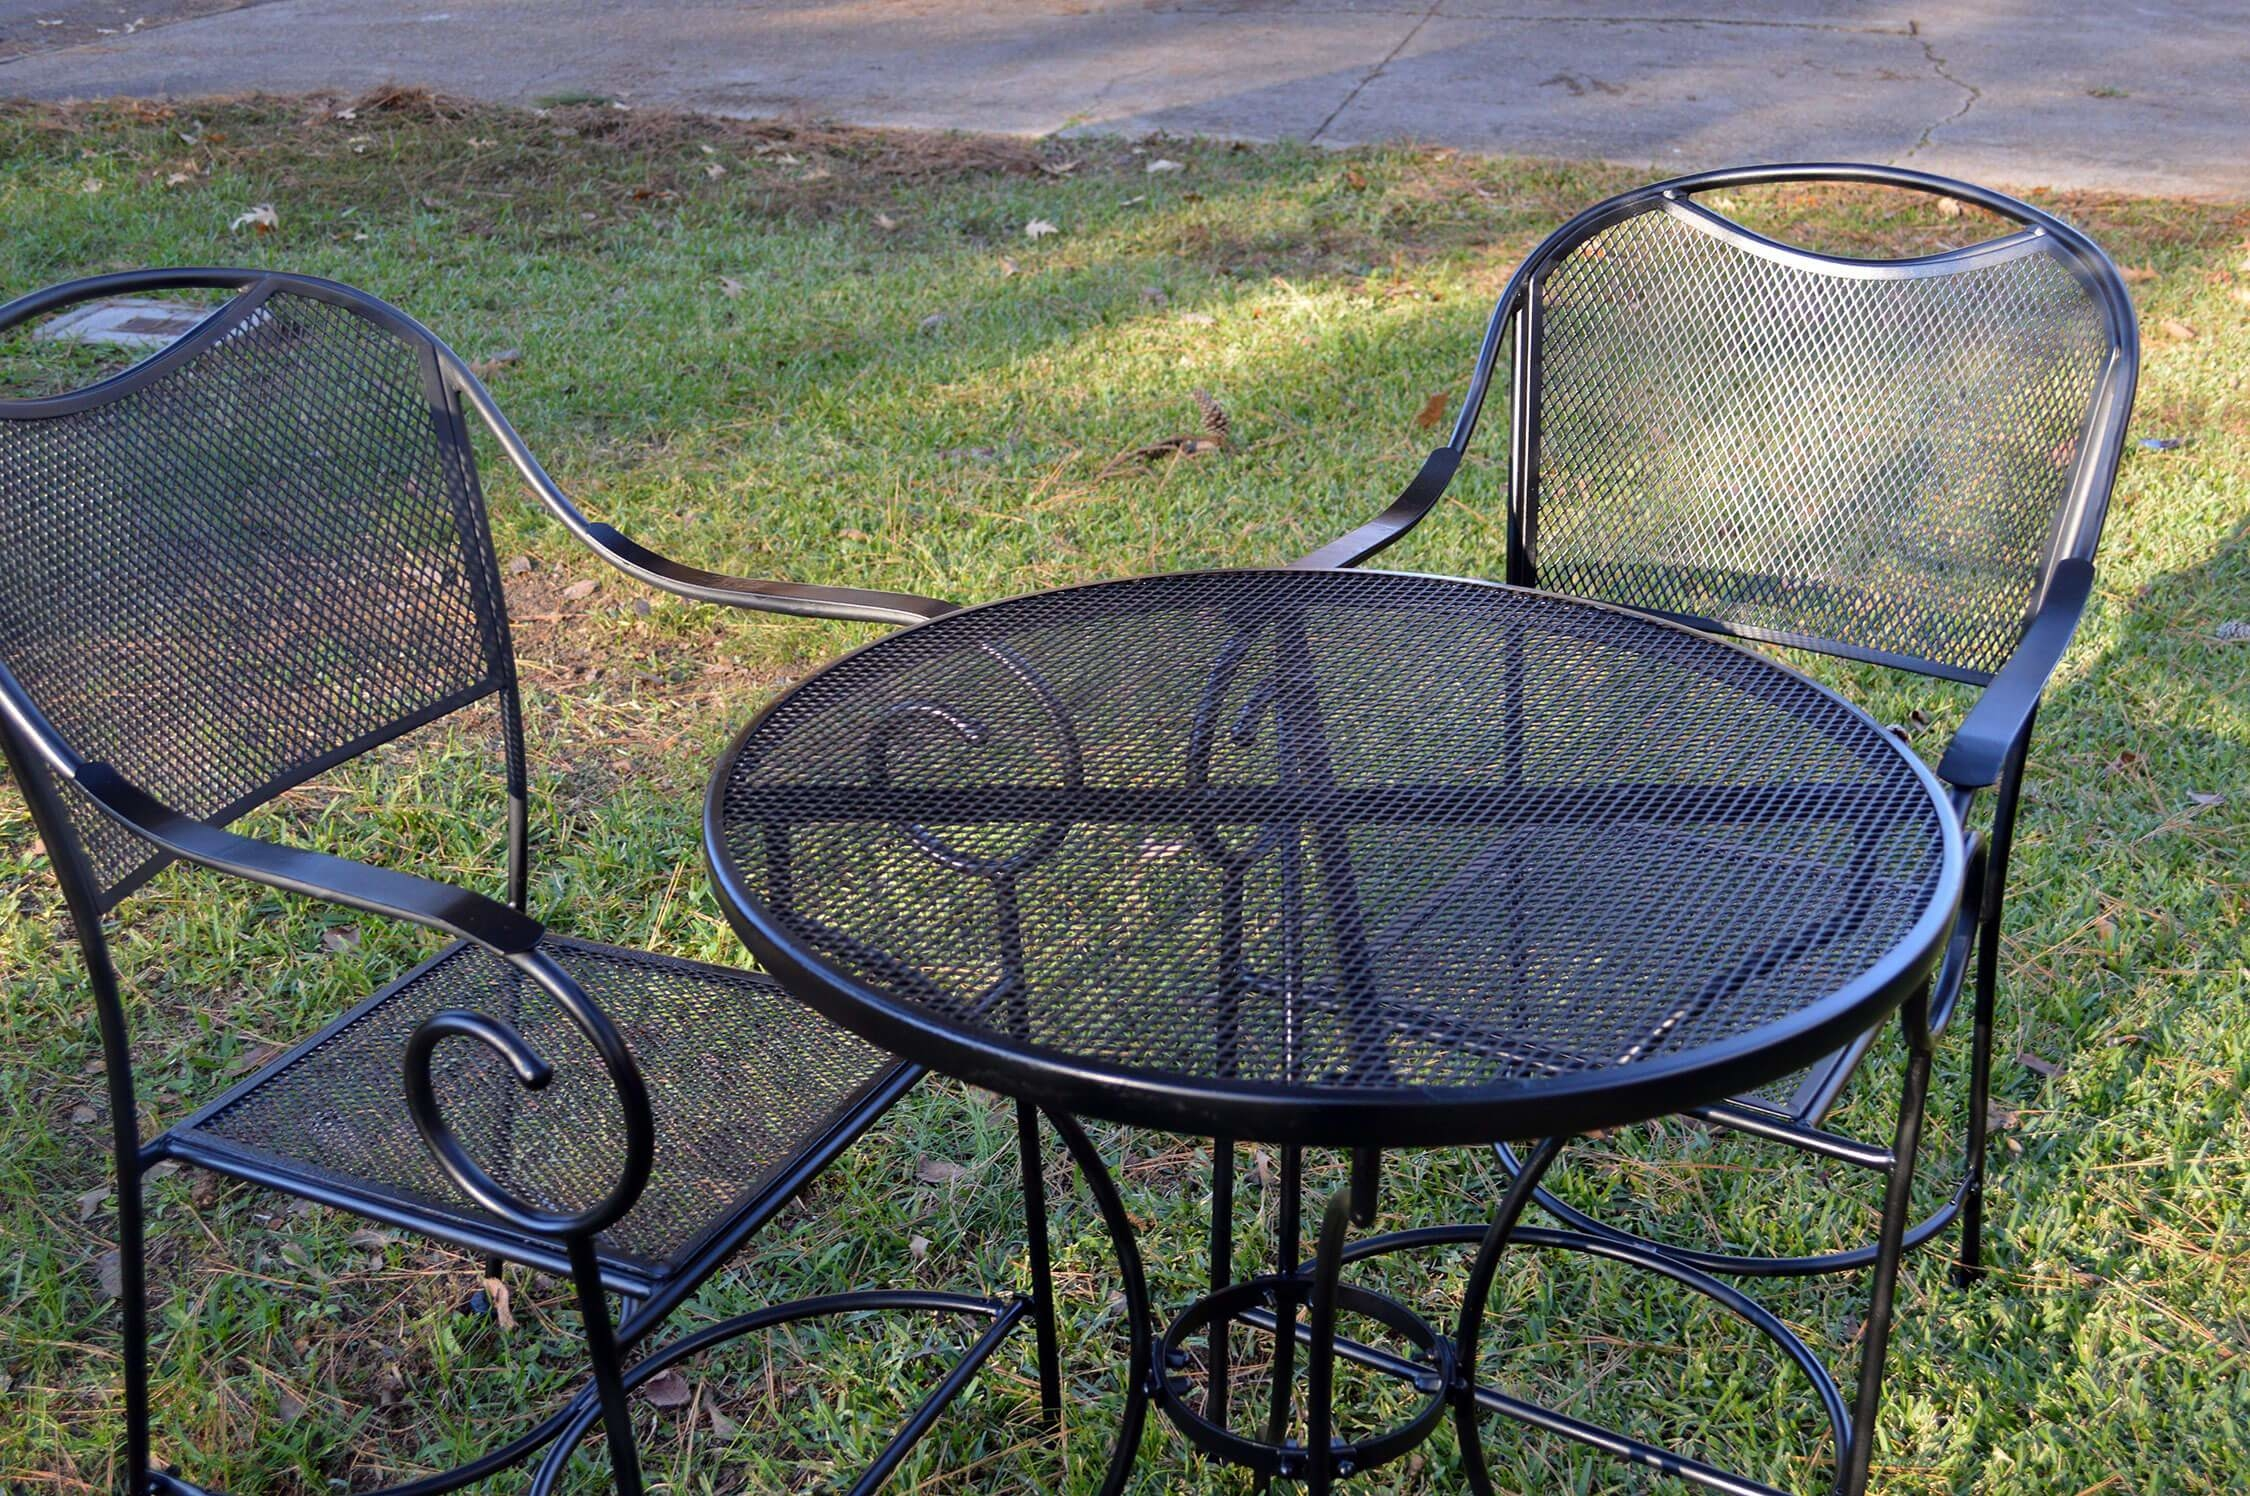 outdoor furniture tn seating restaurants stores knoxville rental repair  patio pool furnishings new